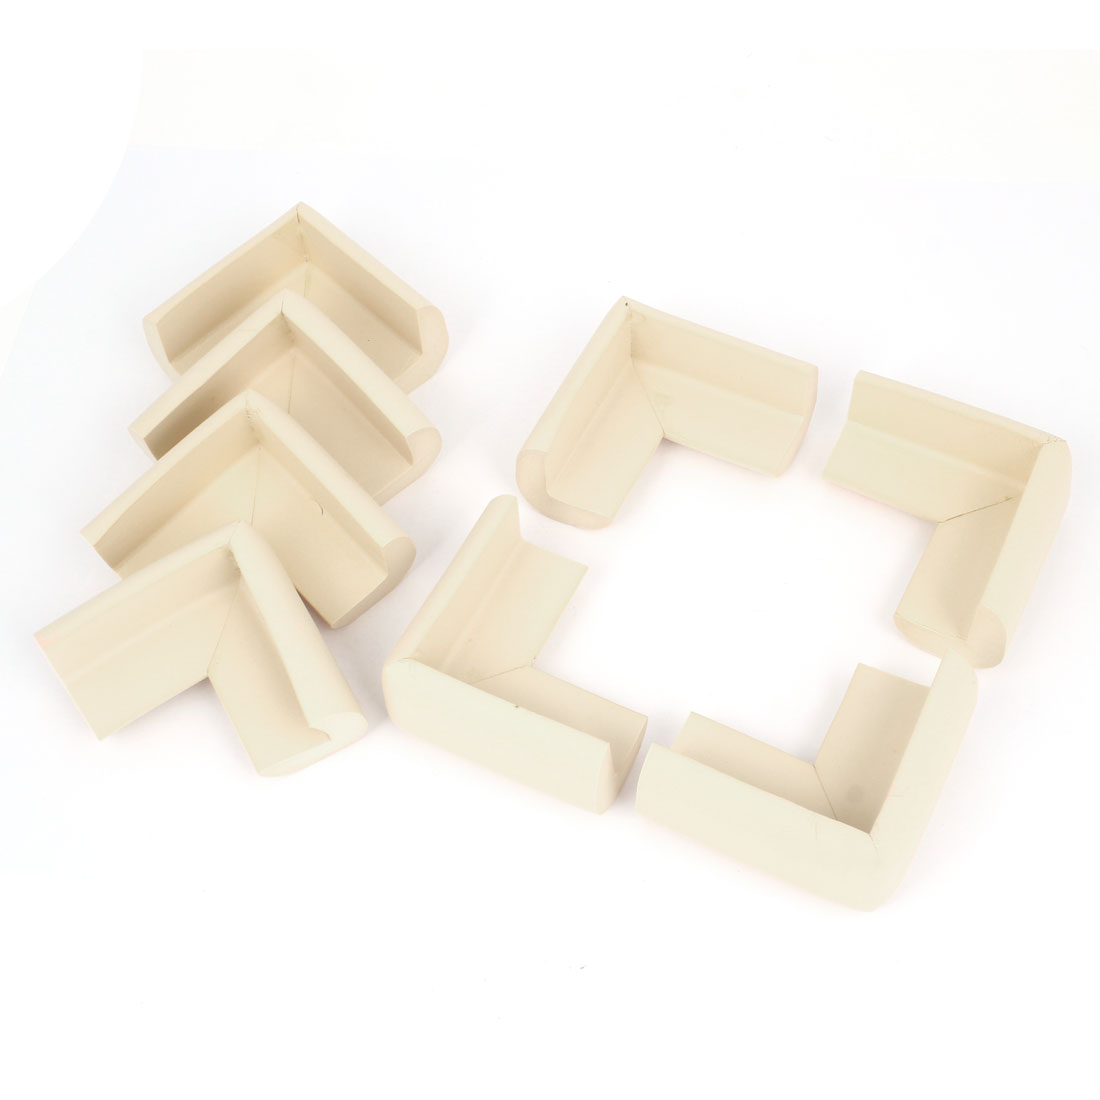 Off White Foam Table Cupboard Corner Cover Guard Protector Cushion 8Pcs